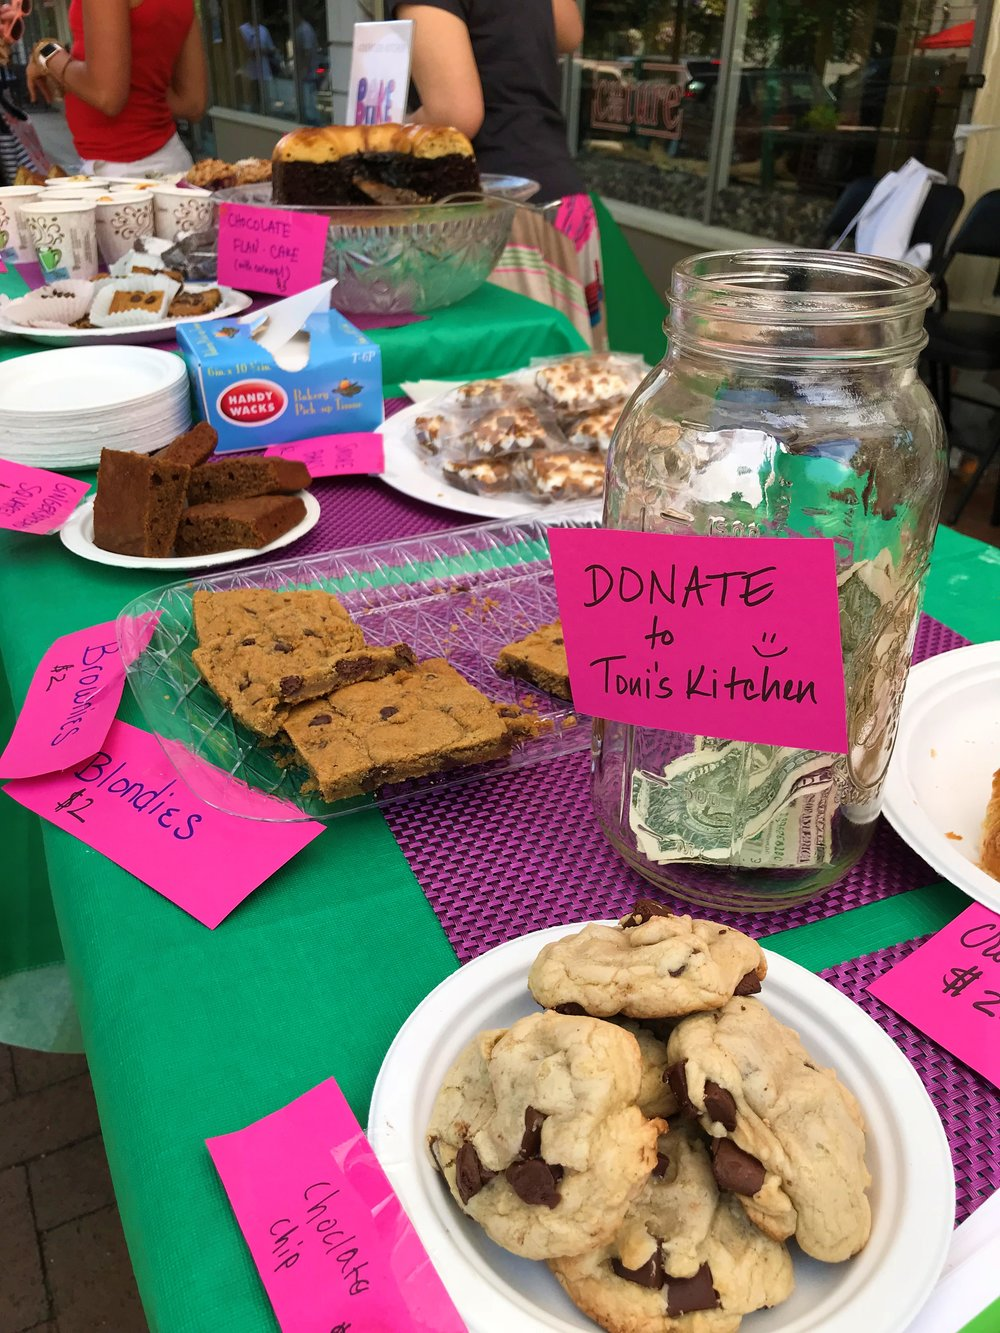 Yummy Baked Goods and Generous Donations